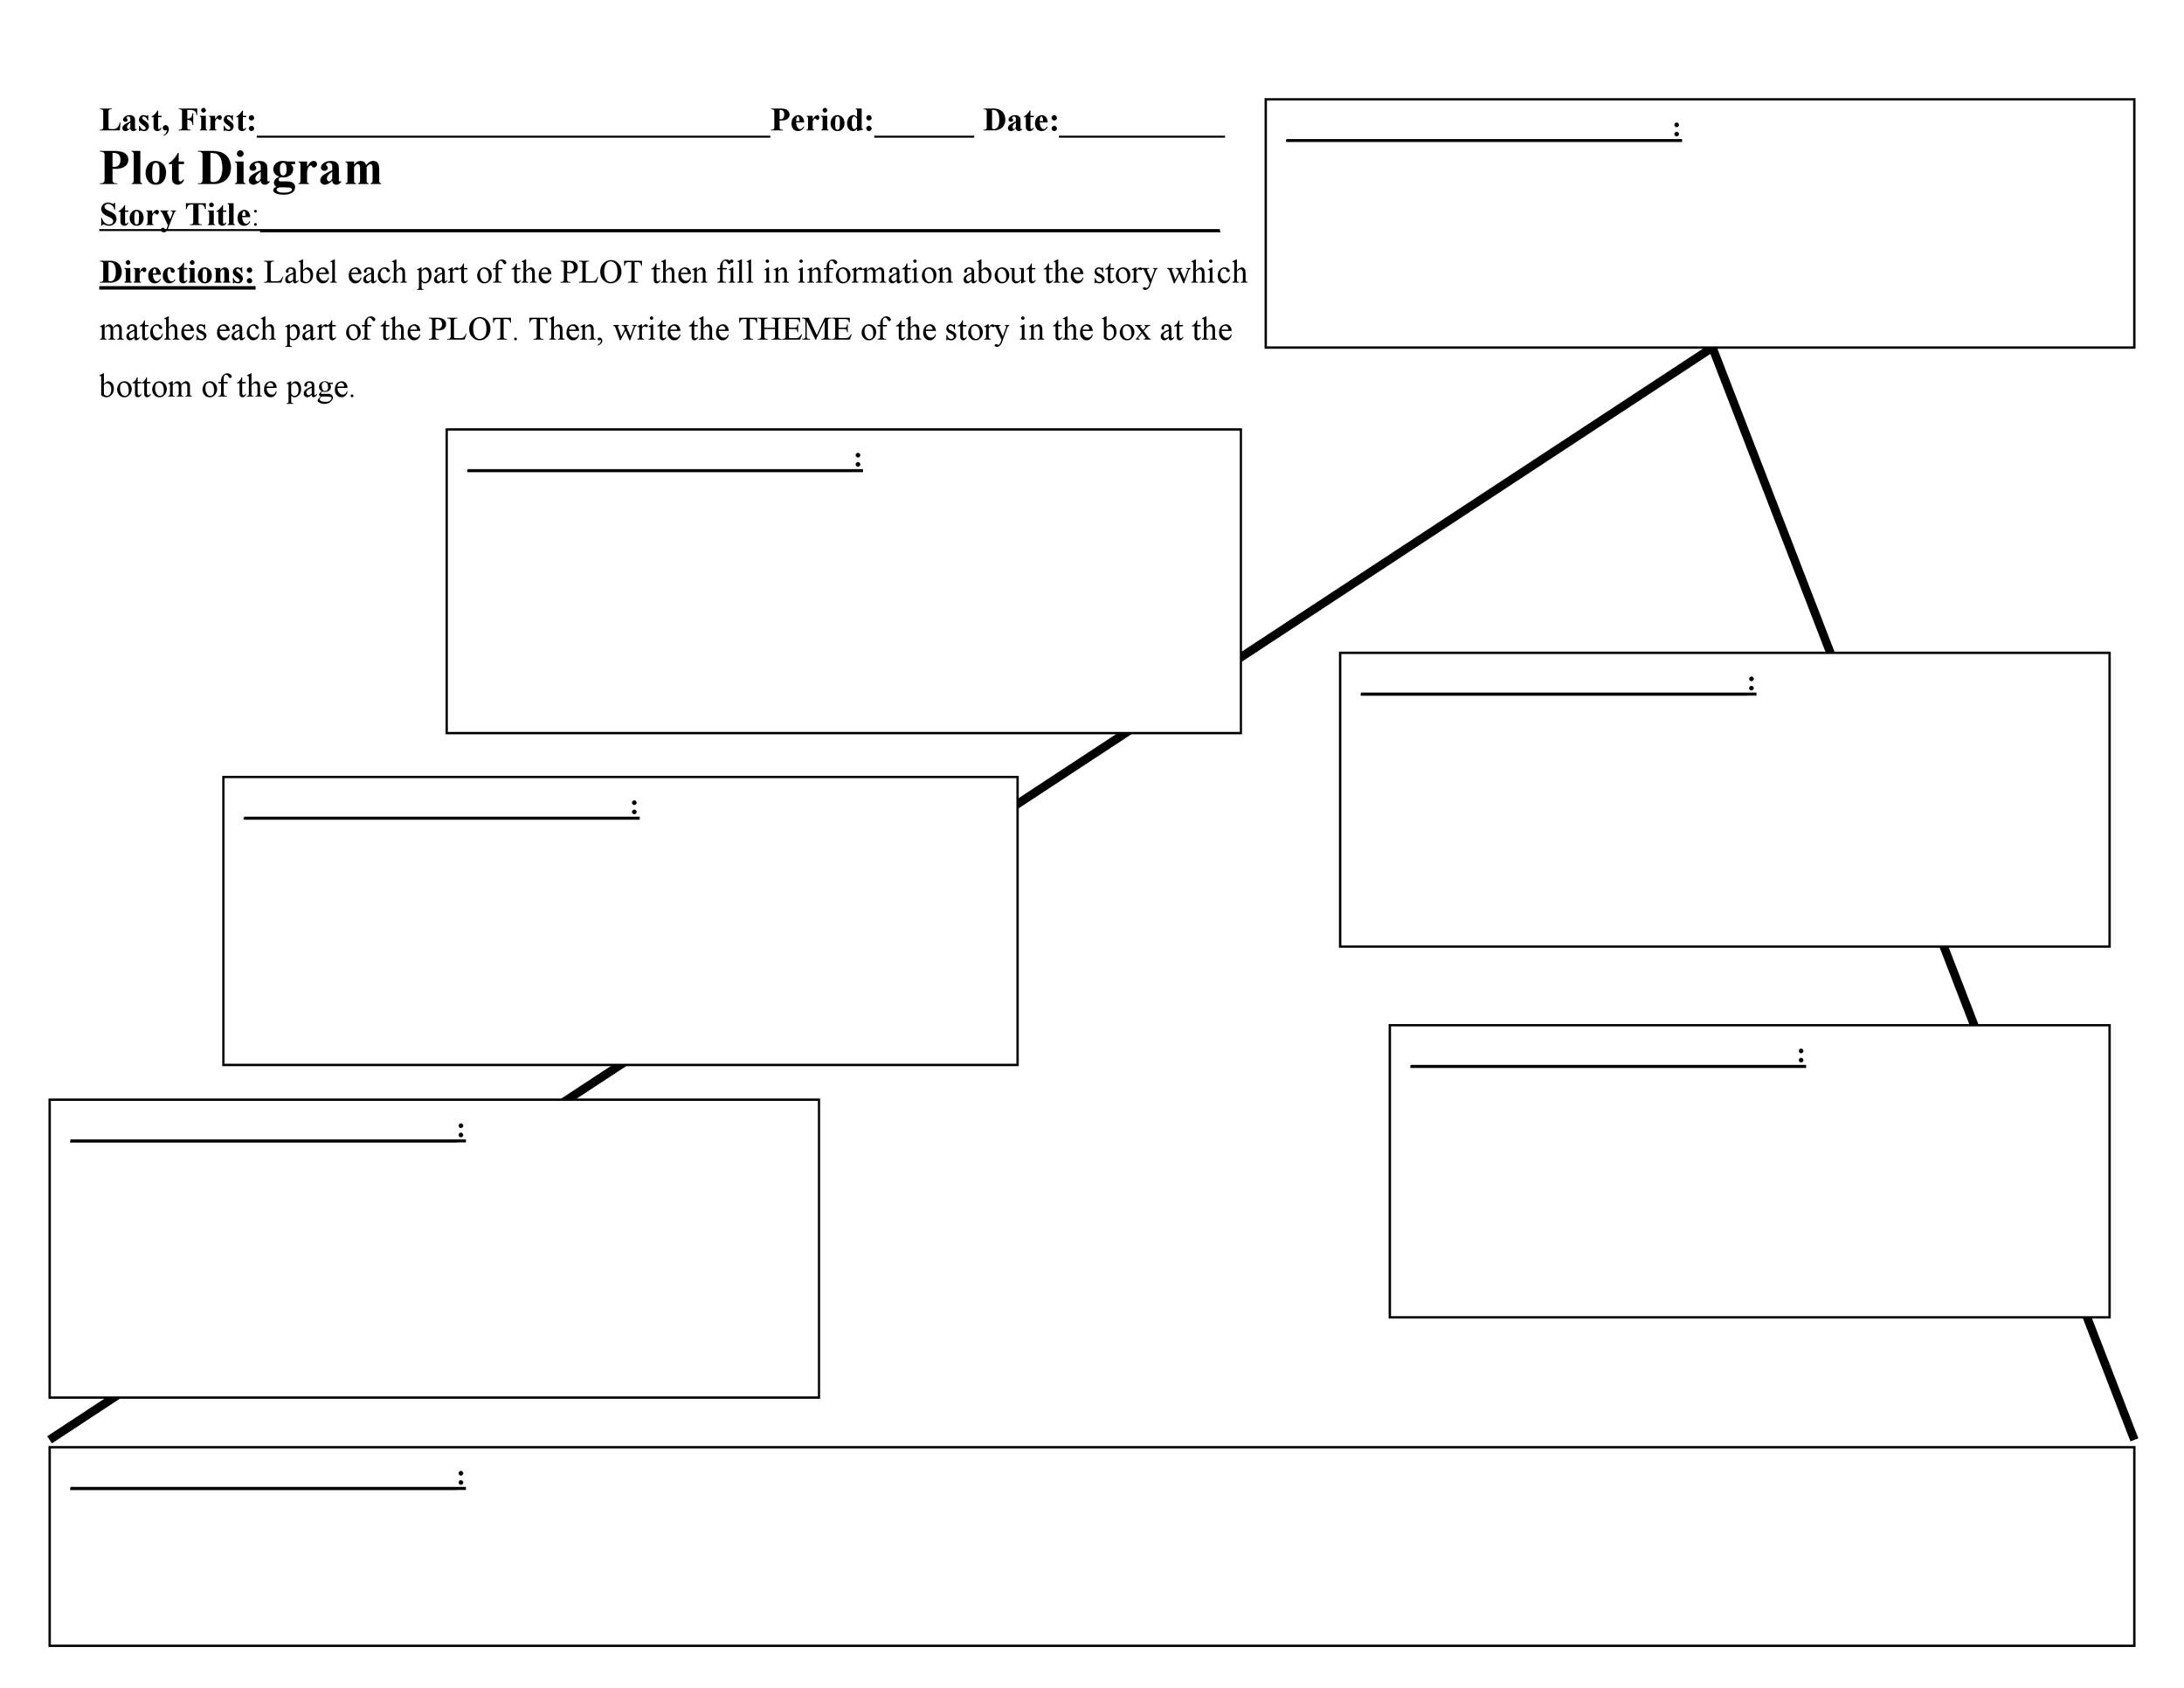 photograph about Printable Plot Diagram called 45 Educated Plot Diagram Templates (Plot Pyramid) ᐅ